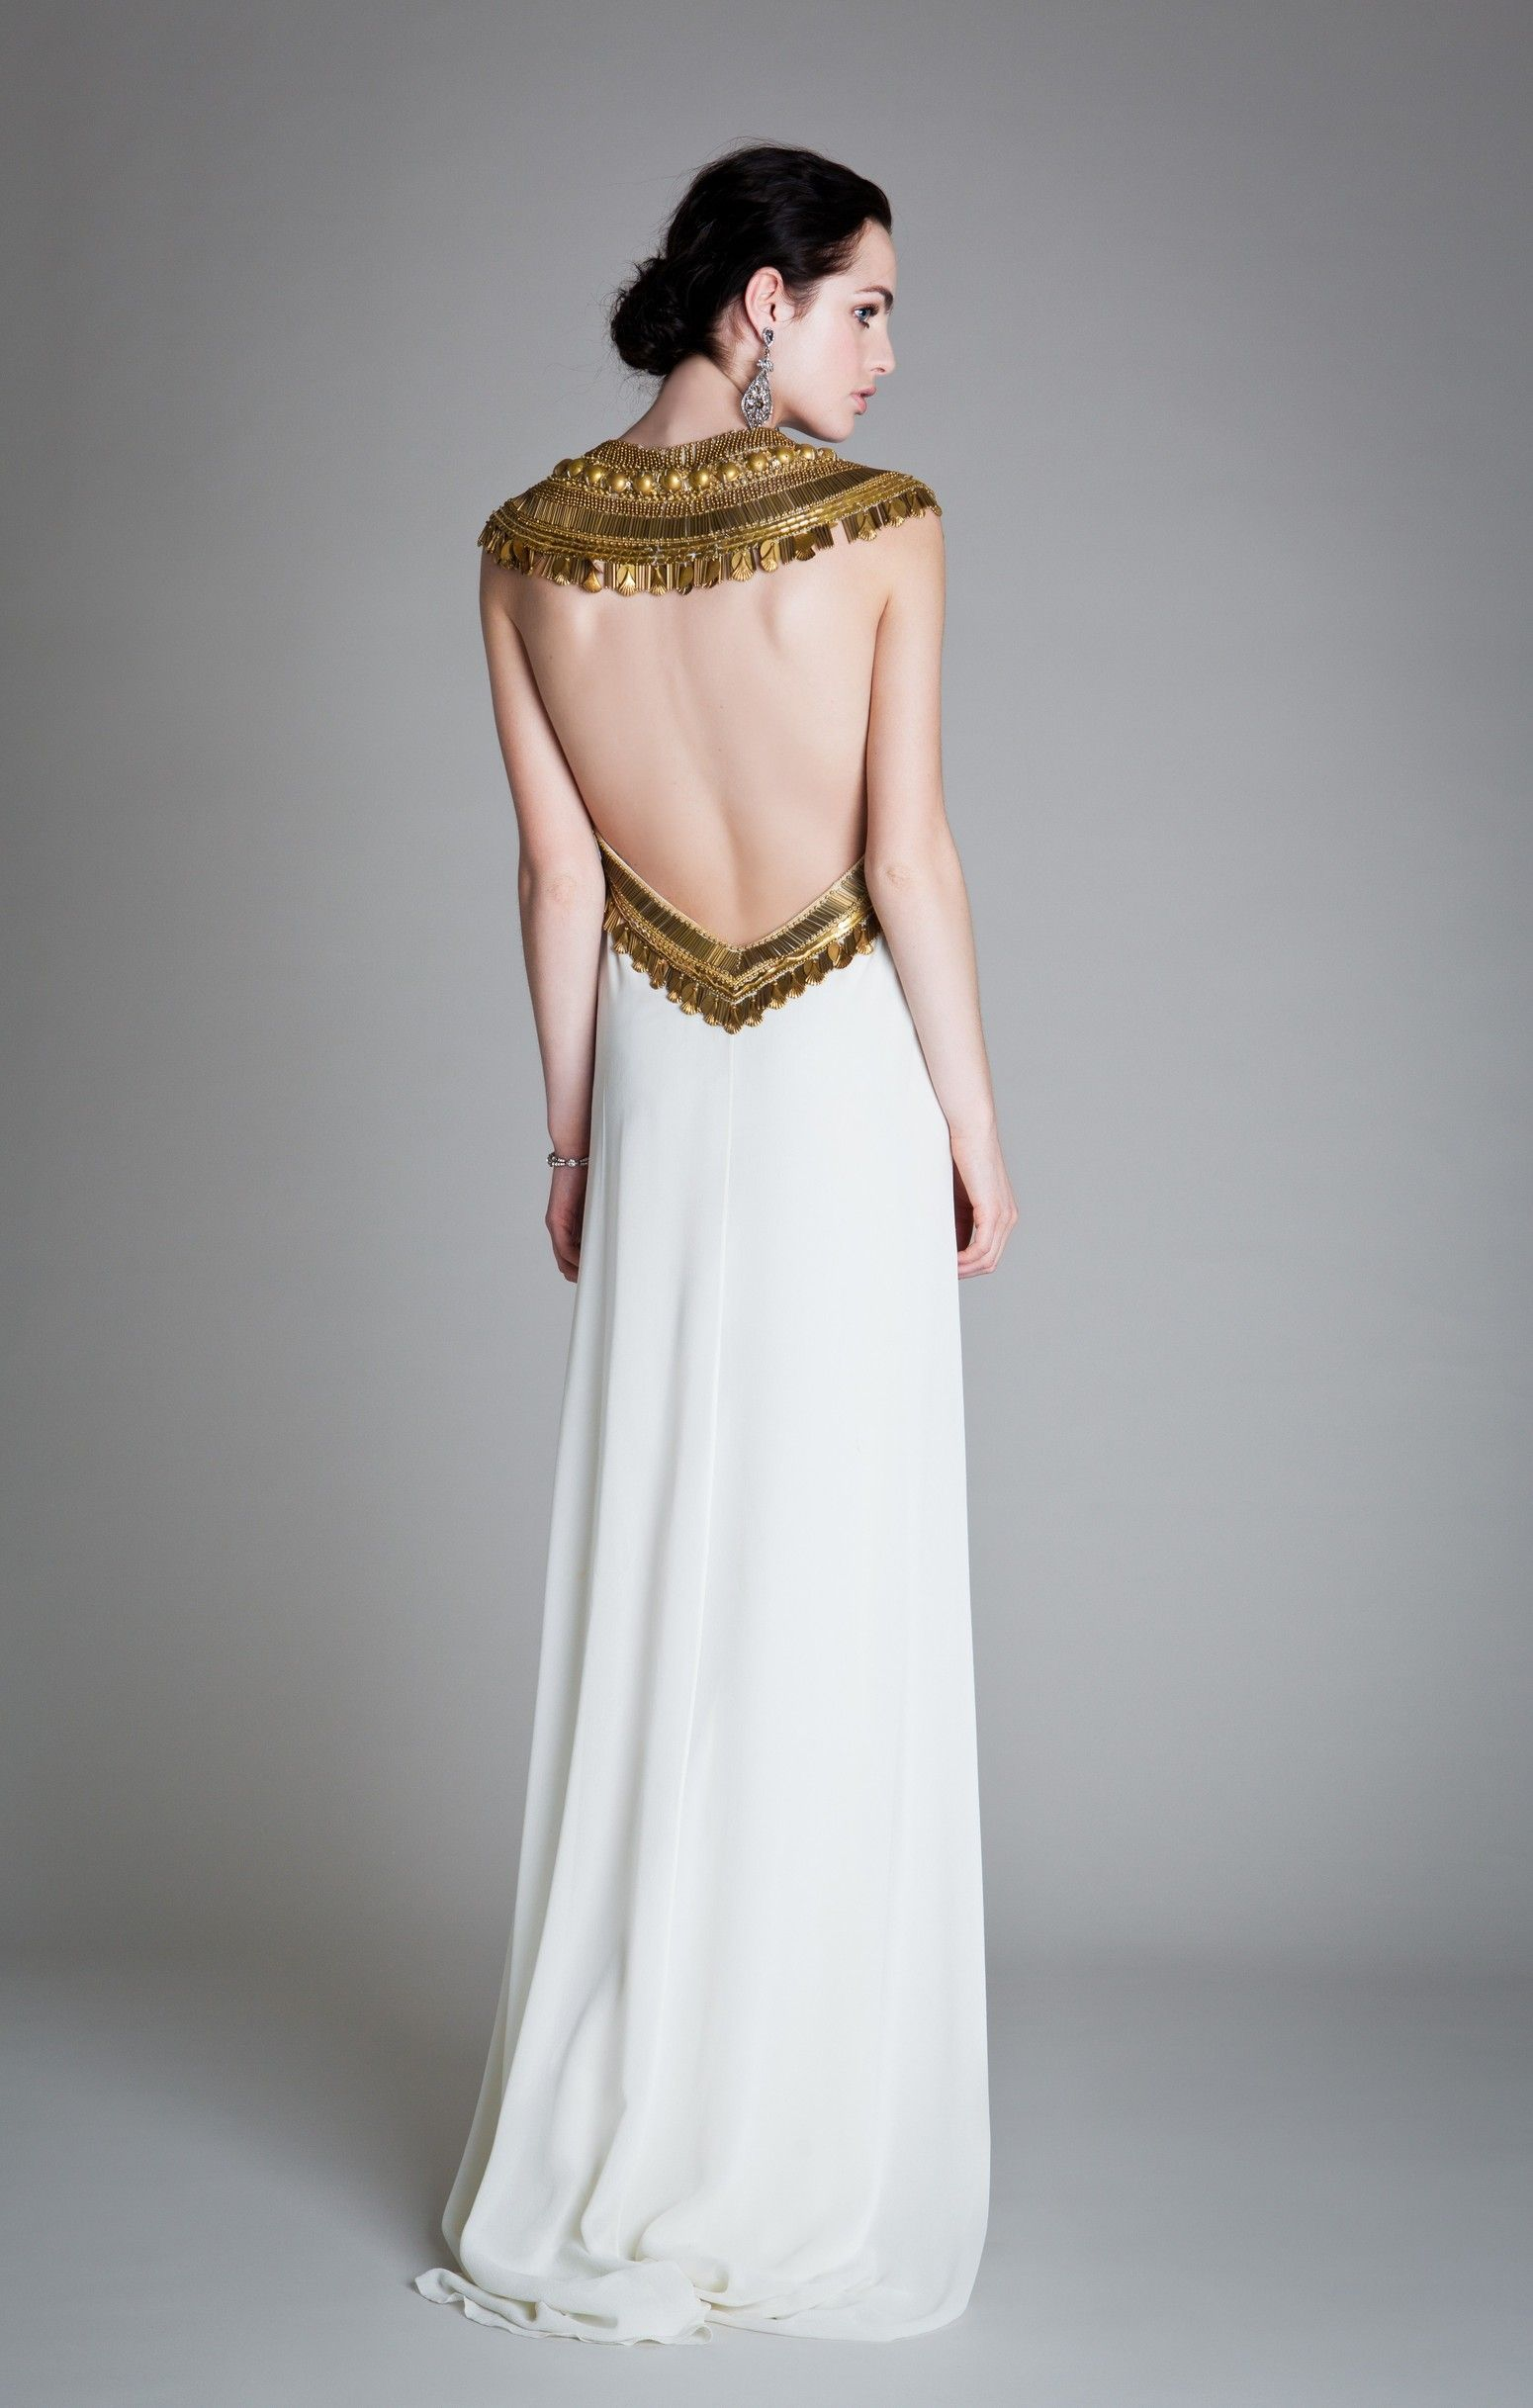 Back of Goddess Dress | outfit ideas for stories | Pinterest ...